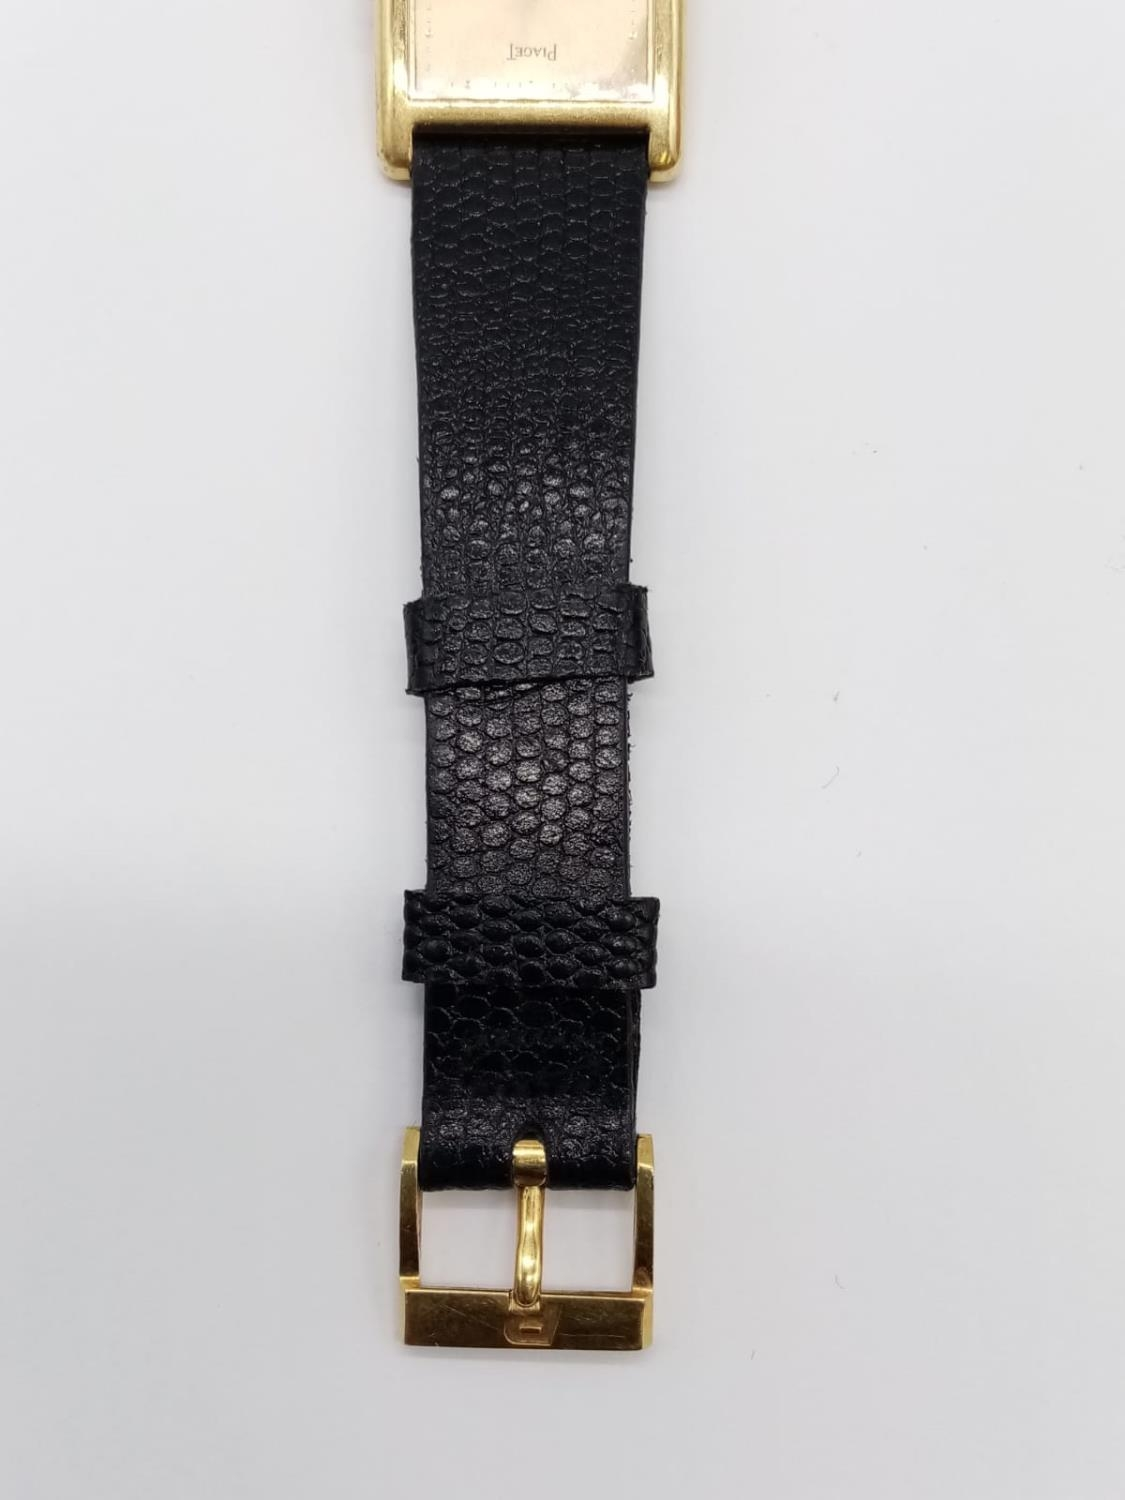 Vintage Plaget 18ct gold ladies watch with square face (22mm) and leather strap - Image 10 of 10